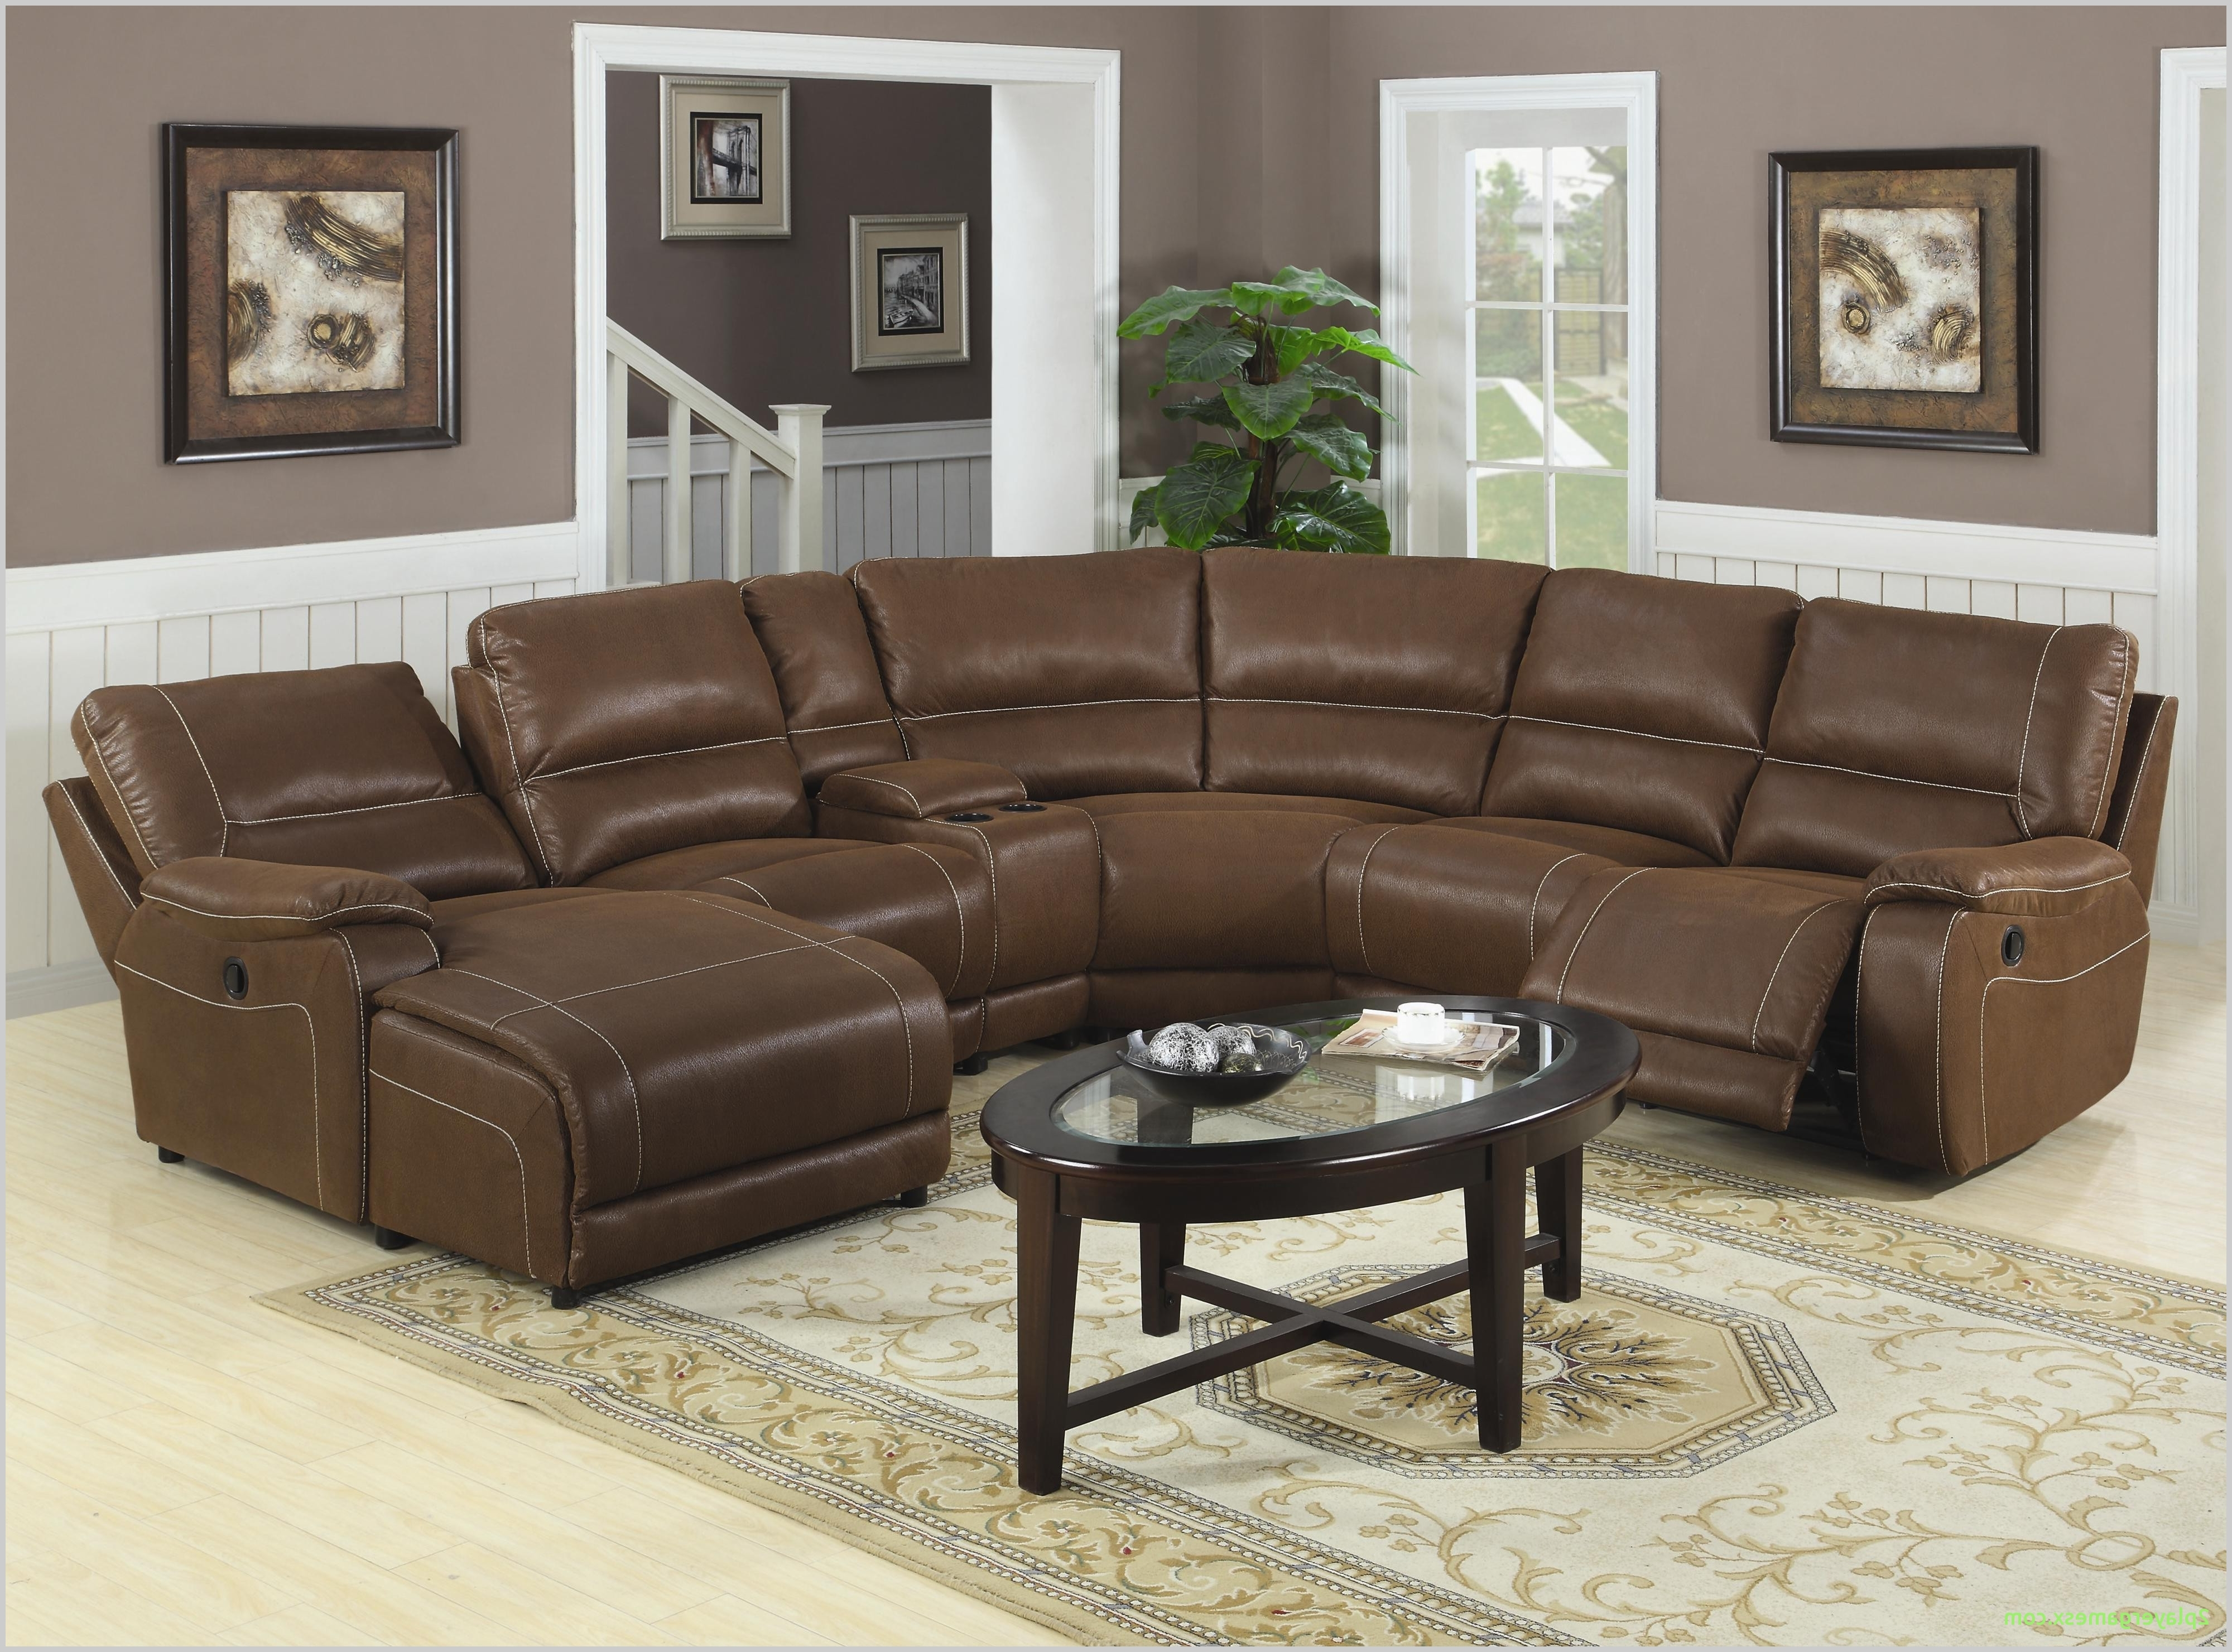 2018 Dual Purpose Furniture Small Spaces Leather Sofas For Apartments Throughout Sectional Sofas For Small Spaces With Recliners (View 1 of 20)